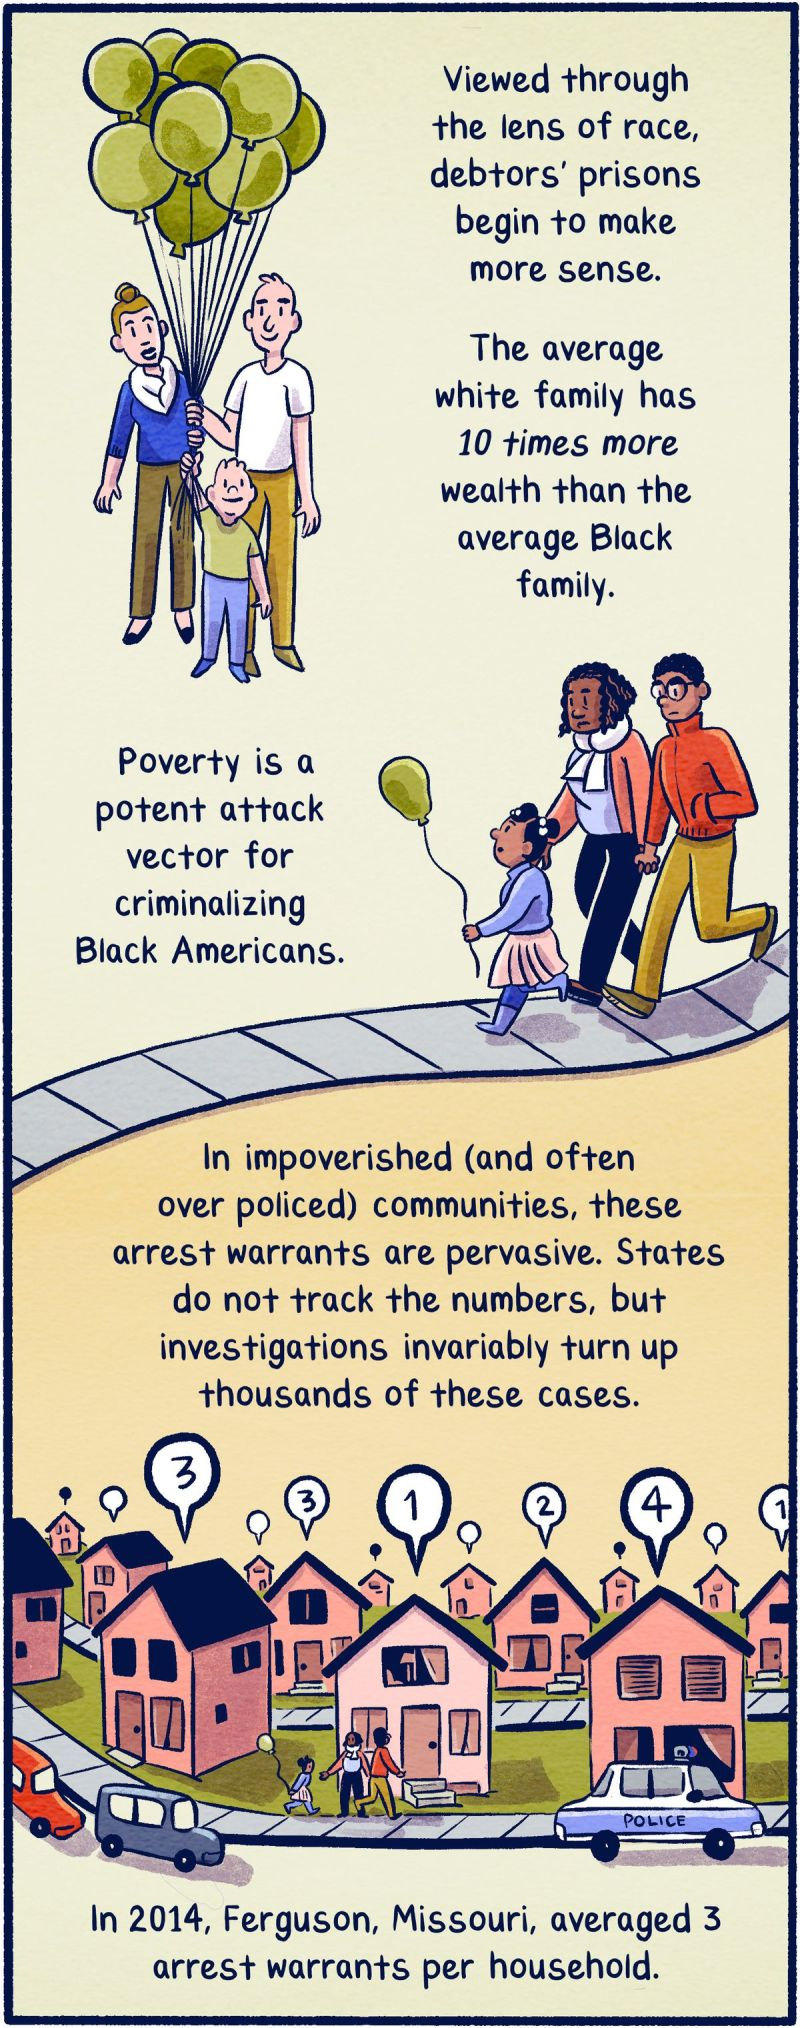 Viewed through the lens of race, debtors' prisons begin to make more sense. The average white family has 10 times more wealth than the average Black family. Poverty is a potent attack vector for criminalizing Black Americans. In impoverished (and often over-policed) communities, these arrest warrants are pervasive. States do nottrack the numbers, but investigations invariably turn up thousands of these cases. In 2014, Ferguson, Missouri, averaged 3 arrest warrants per household.